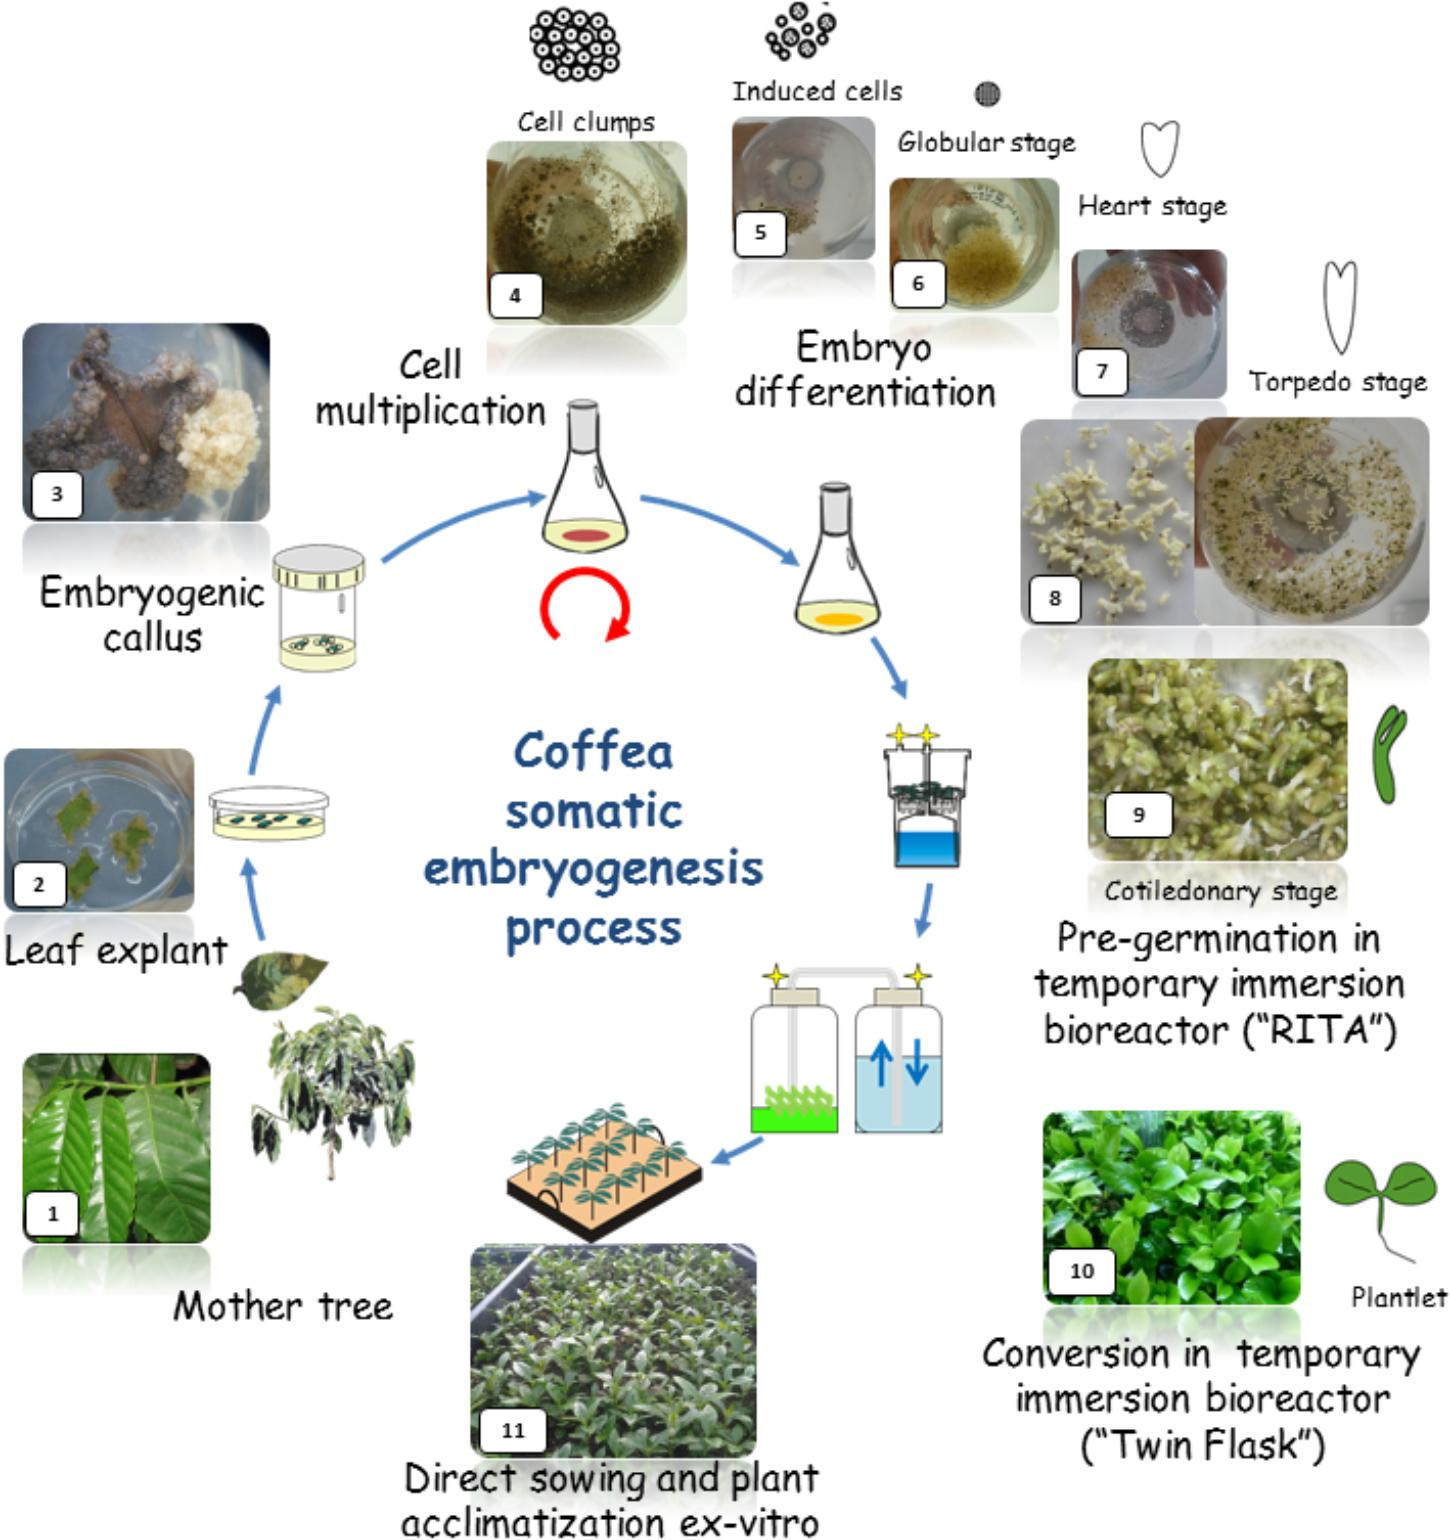 Frontiers | Coffee Somatic Embryogenesis: How Did Research